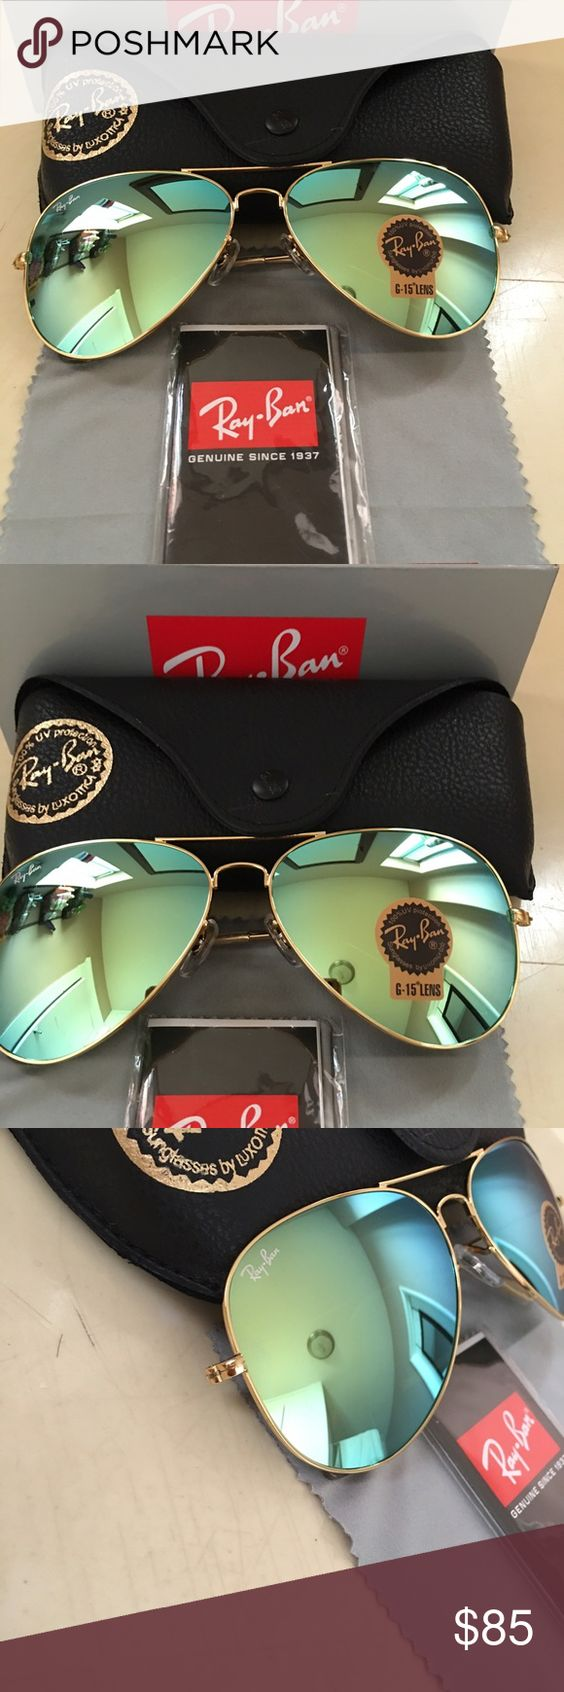 ray ban aviator glass models  authentic ray ban aviator product description brand: ray ban model: rb 3026 frame color